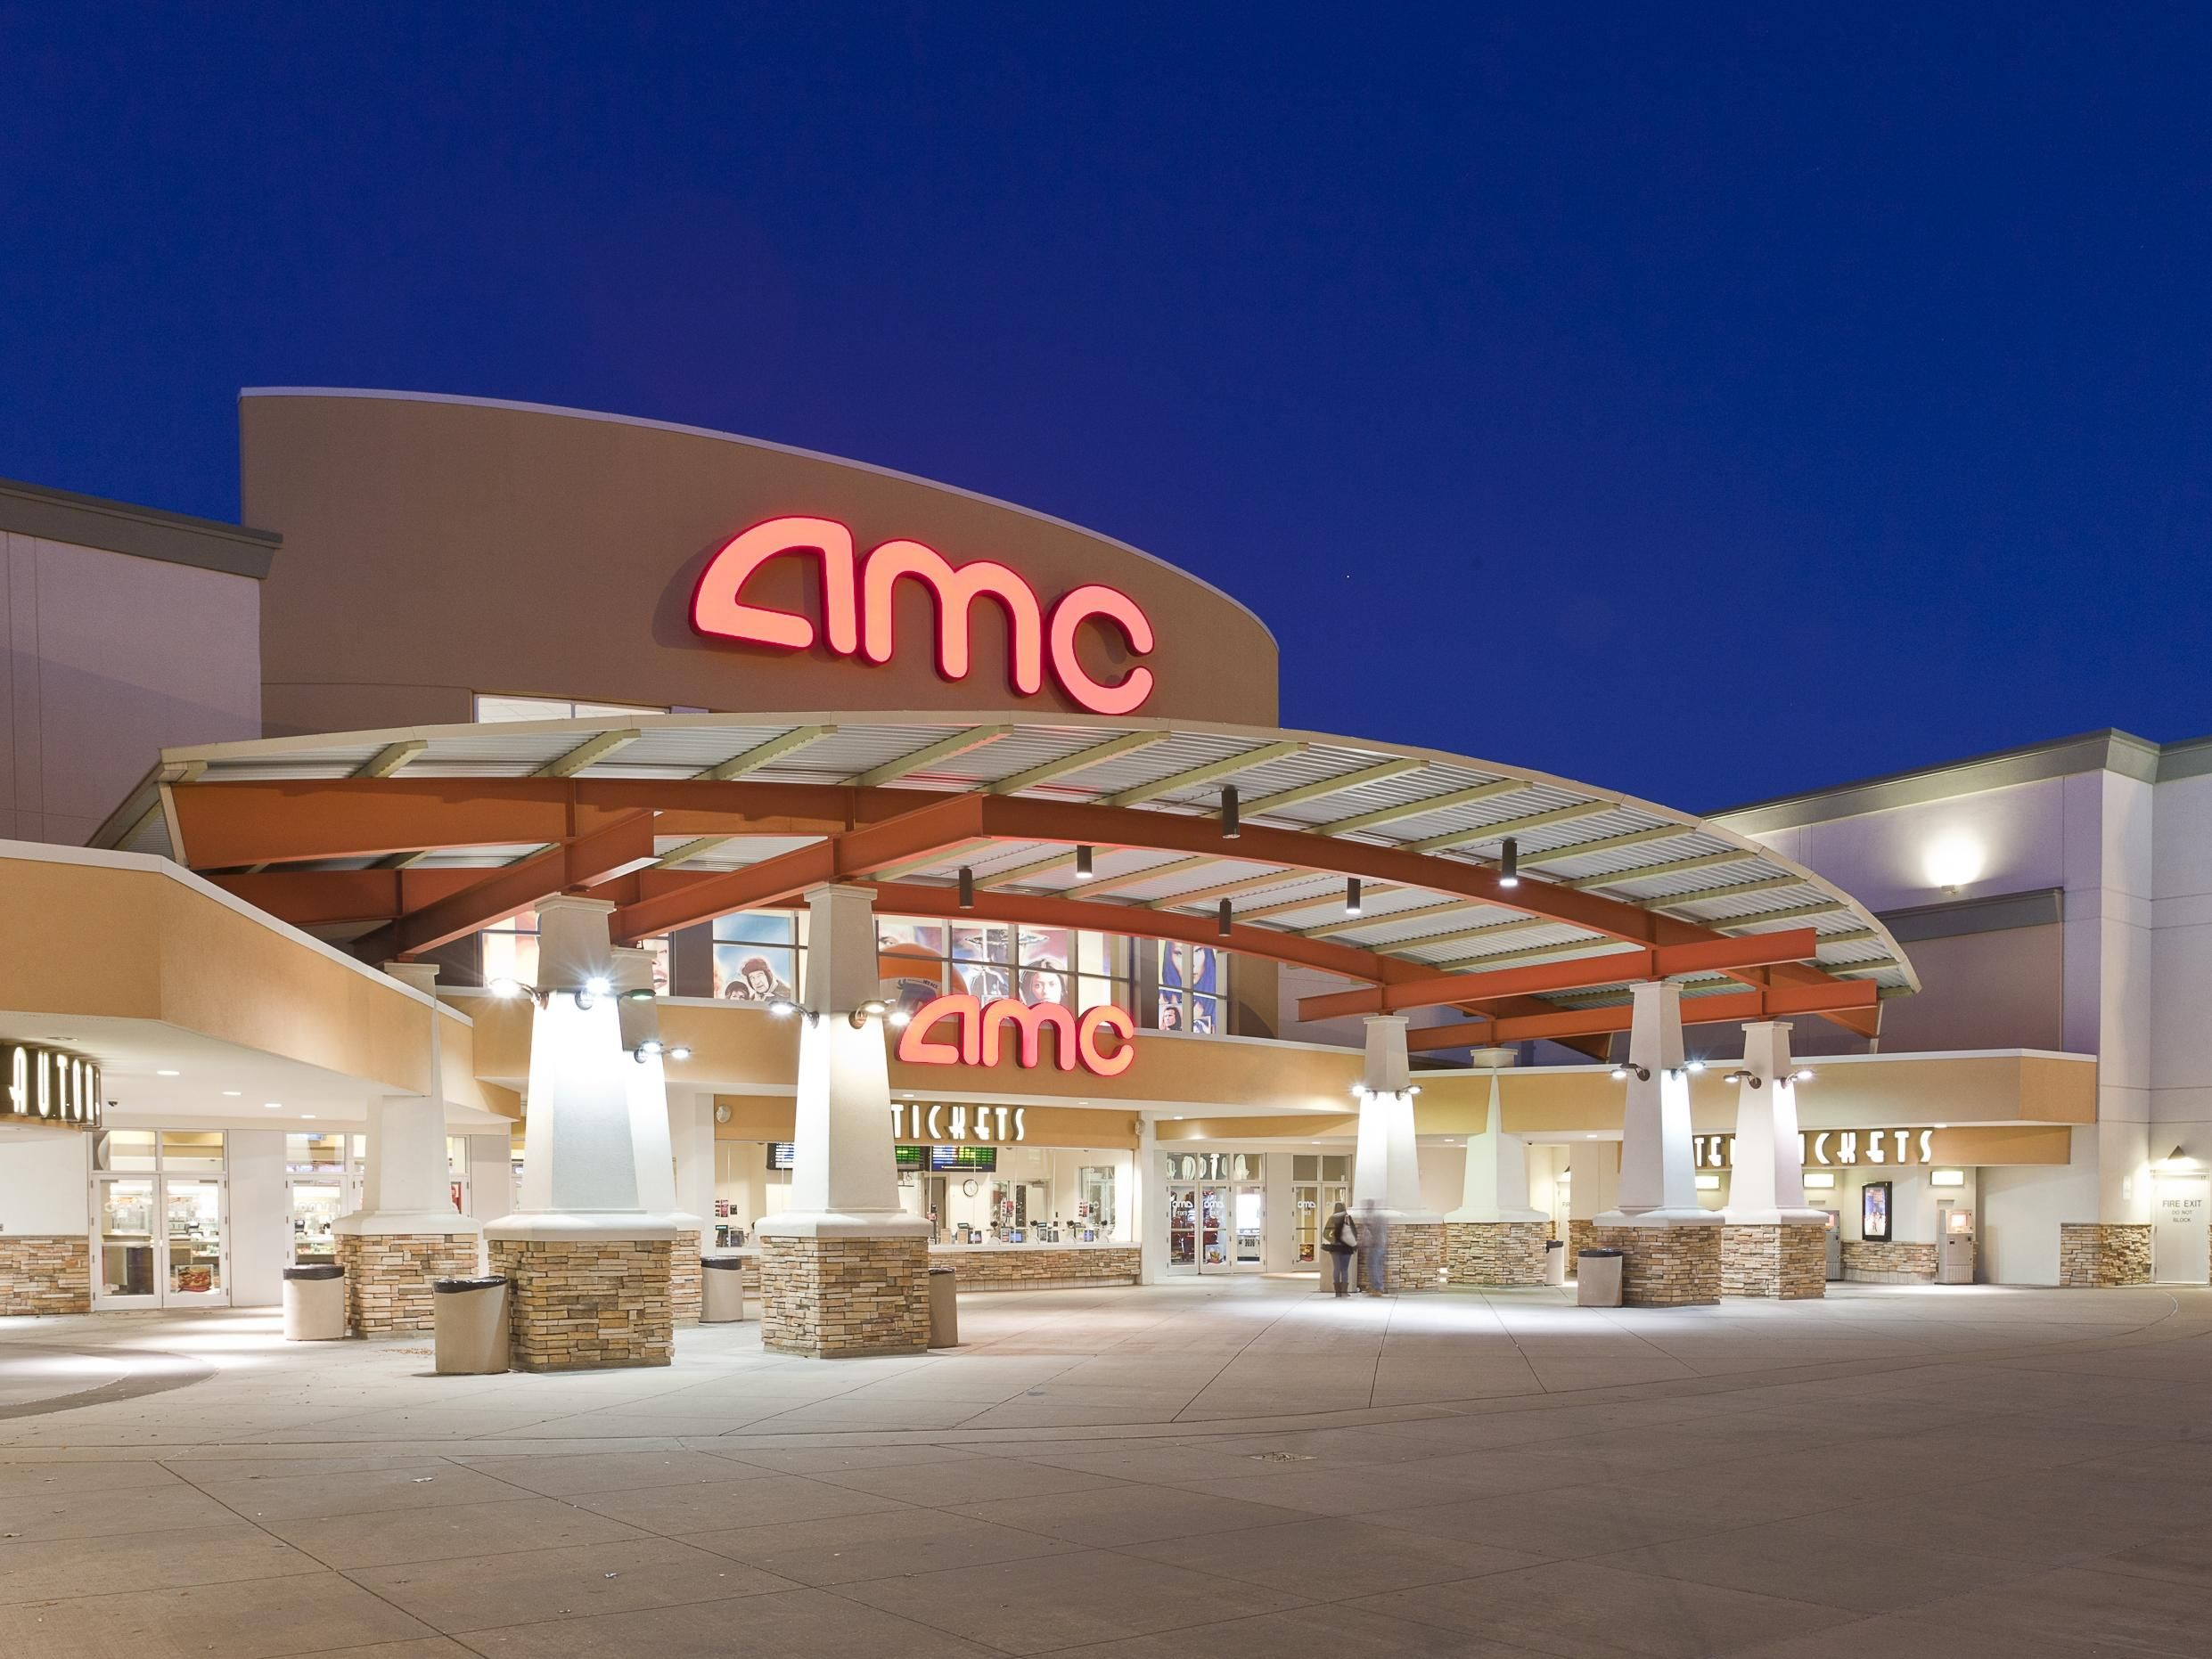 AMC Movie Theater  We loved going to the movies  You are why I love     AMC Movie Theater  We loved going to the movies  You are why I love movies  like I do  We would always share pretzel nuggets